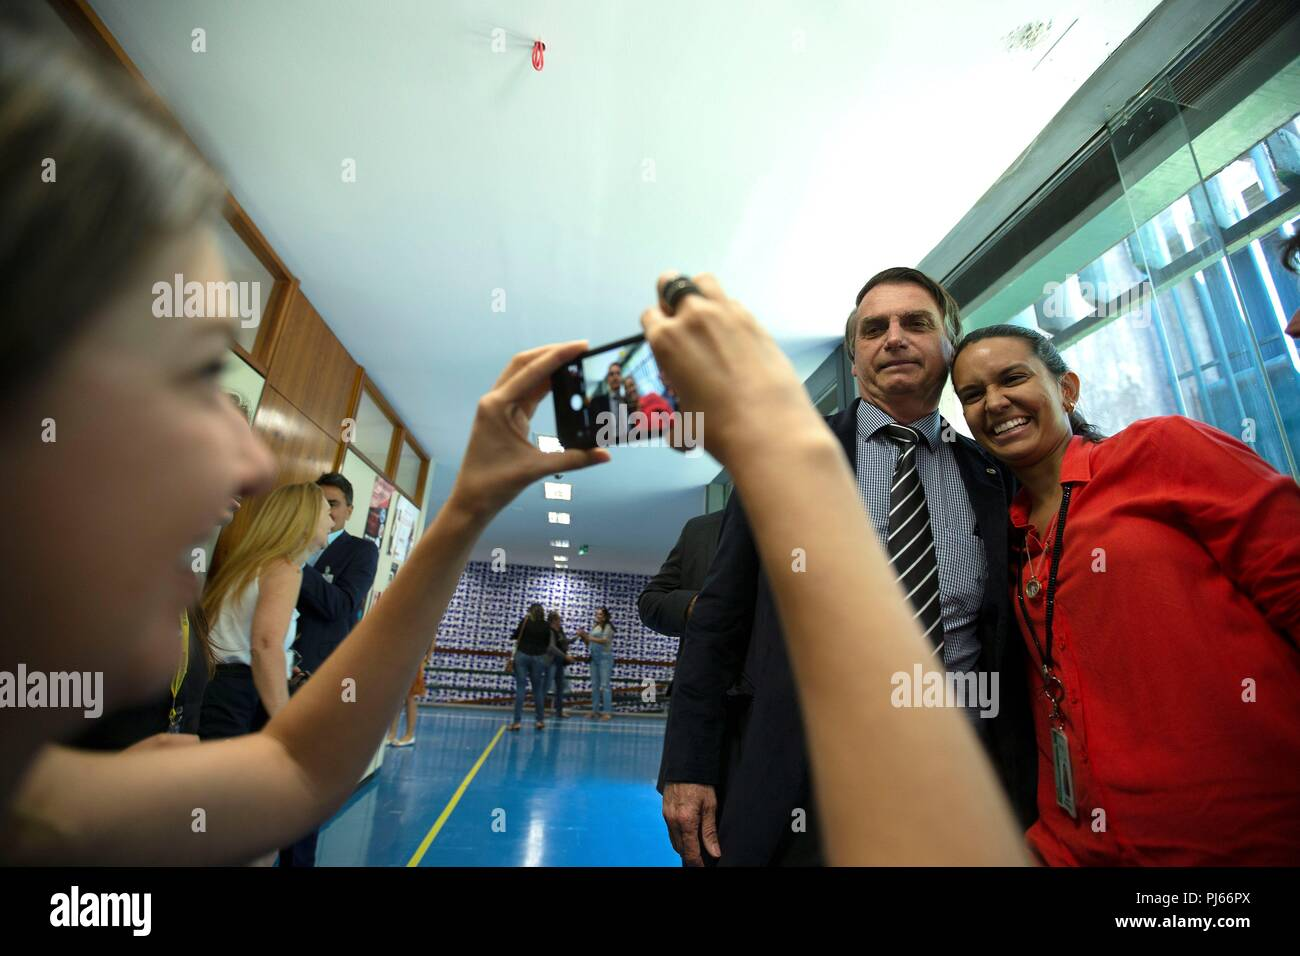 Brasilia, Brazil. 04th Sep, 2018. A supporter takes a picture with Brazilian Presidential Candidate Jair Bolsonaro (PSL) (2-R) in the corridors of the National Congress building, in Brasilia, Brazil, 04 September 2018. The Brazilian presidential election will take place on 07 October 2018. Credit: Joedson Alves/EFE/Alamy Live News - Stock Image